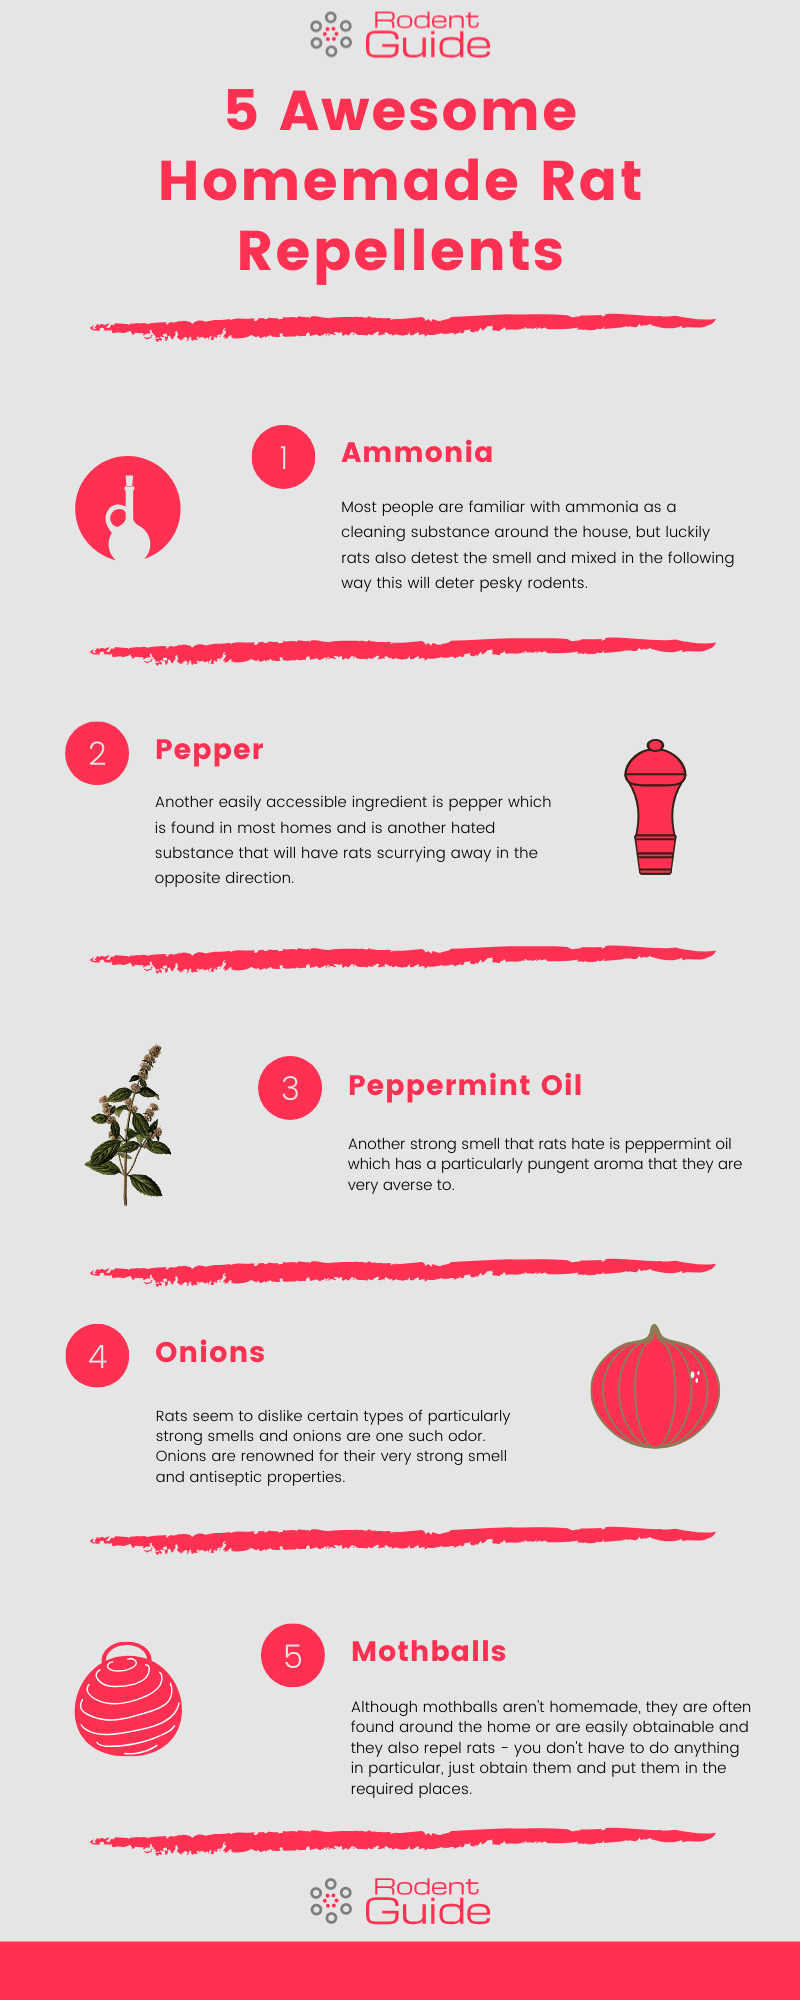 5 Awesome Homemade Rat Repellents Infographic